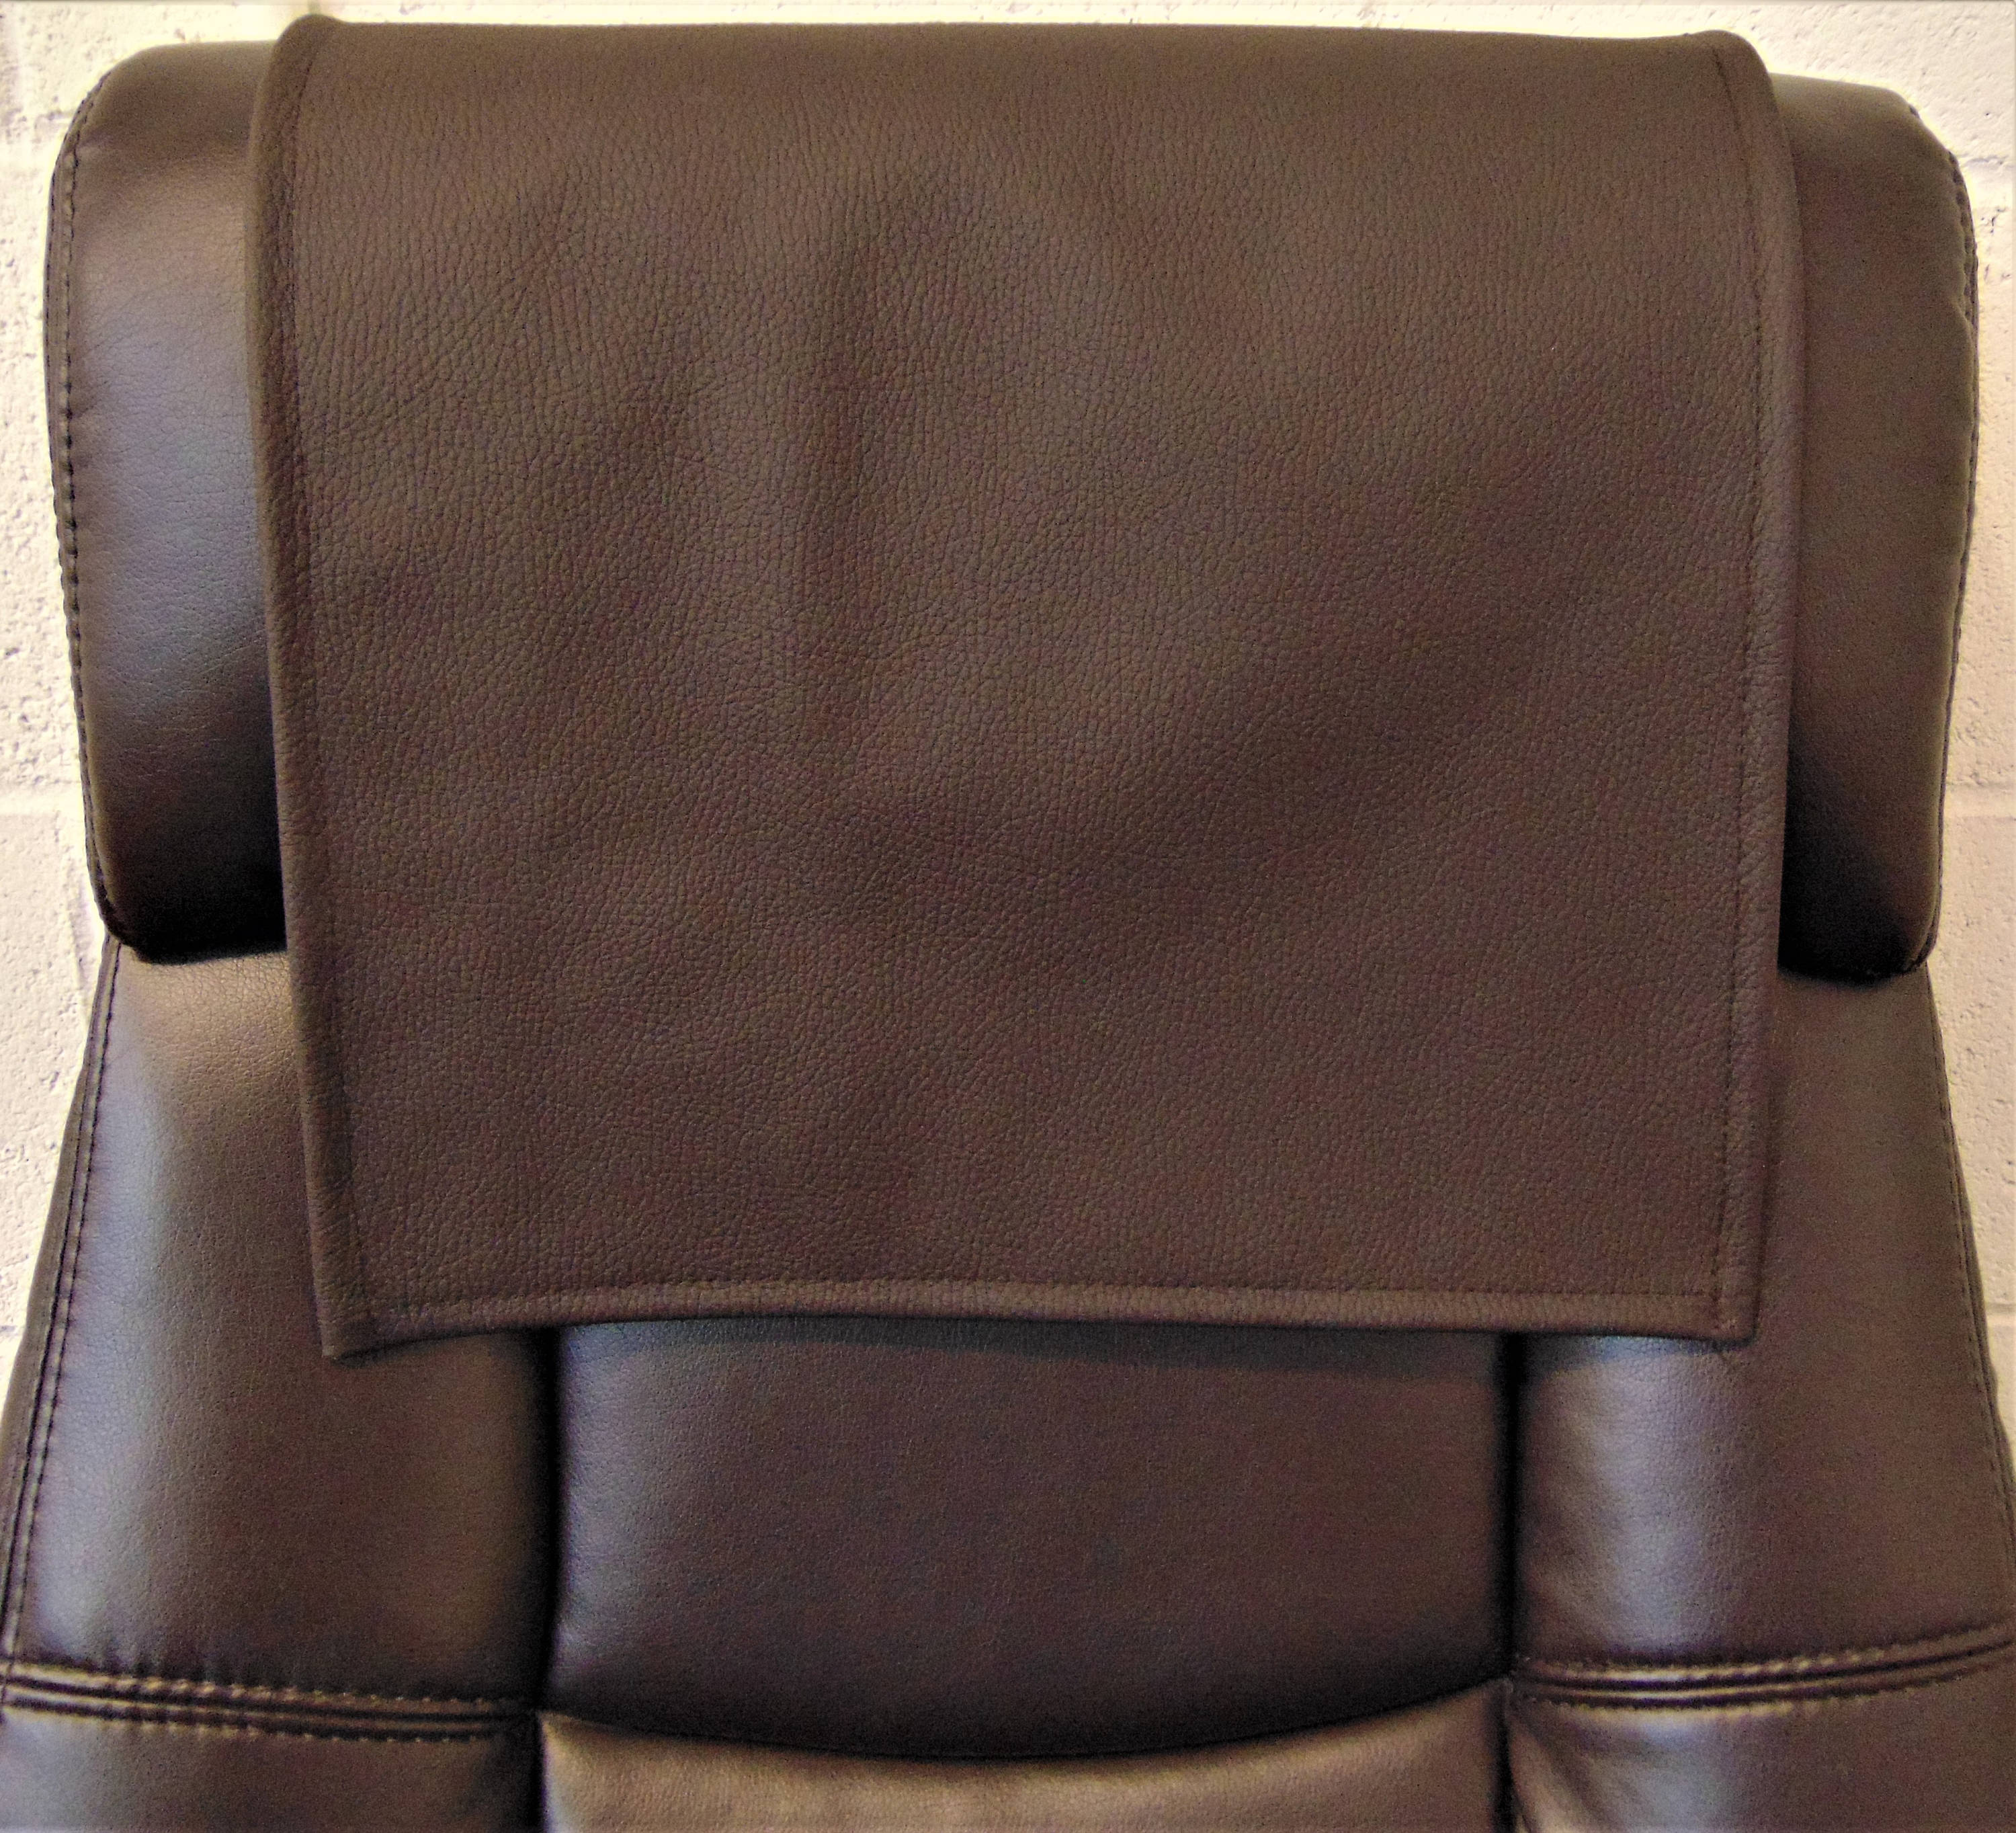 "Dark Brown Genuine Italian Leather 14""x30"" Recliner Furniture Protector Cover 